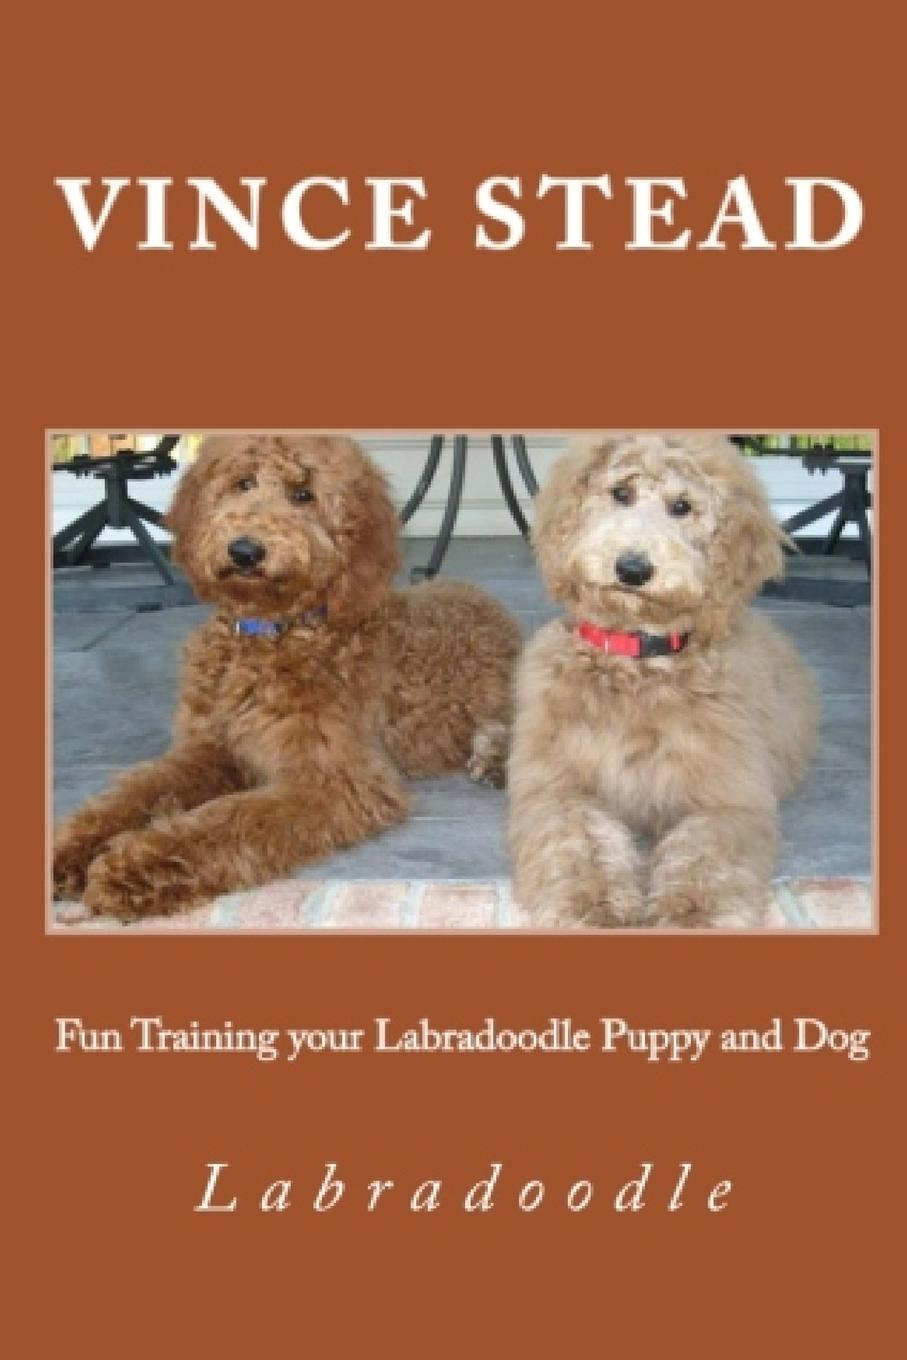 Vince Stead Fun Training your Labradoodle Puppy and Dog vince stead old english sheepdog puppy dog understanding and training